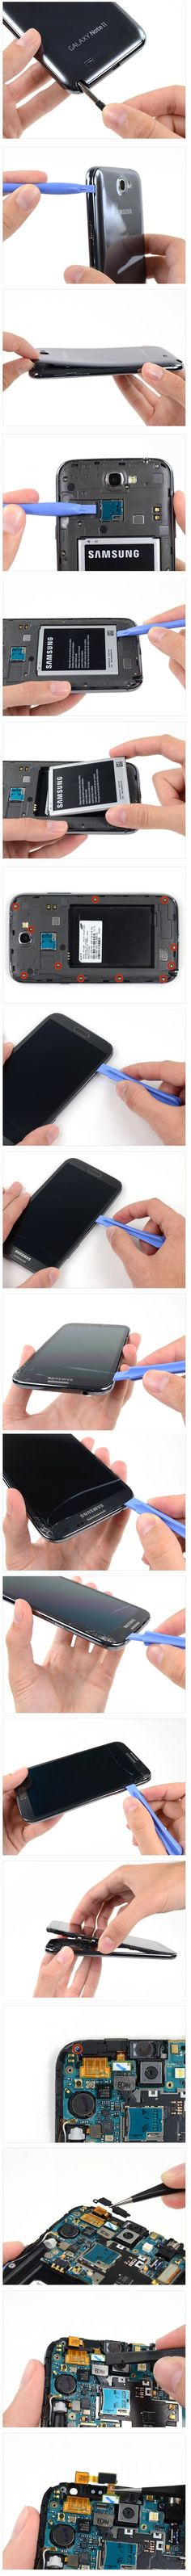 #How_To_Repair_Samsung_Galaxy_Note_II_#Front_Facing_Camera - #STEP BY STEP #TUTORIAL